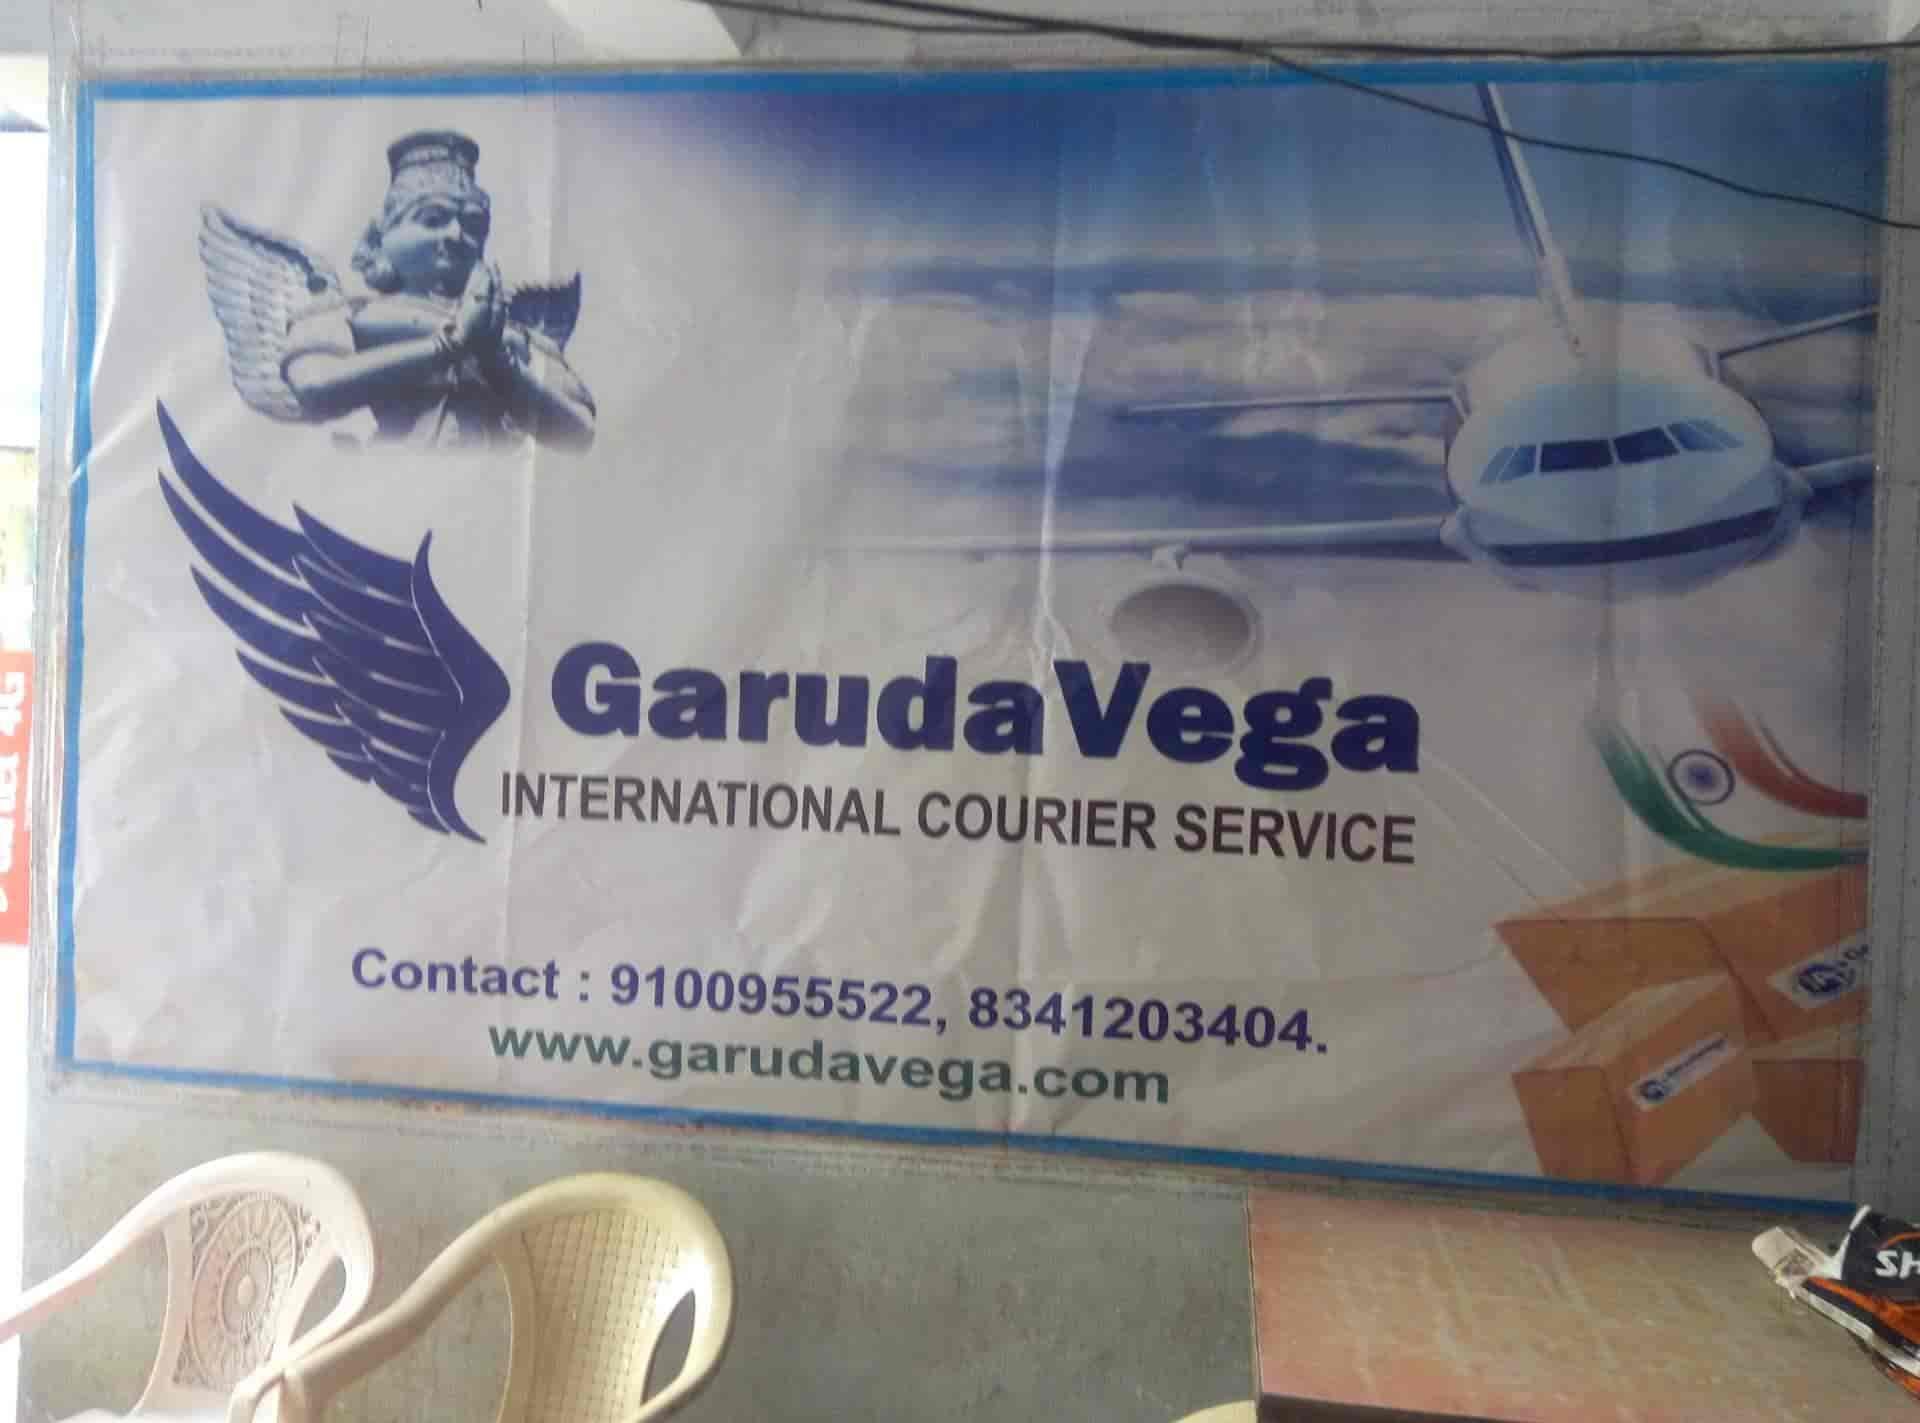 Garudavega International Courier Services, Jeedimetla